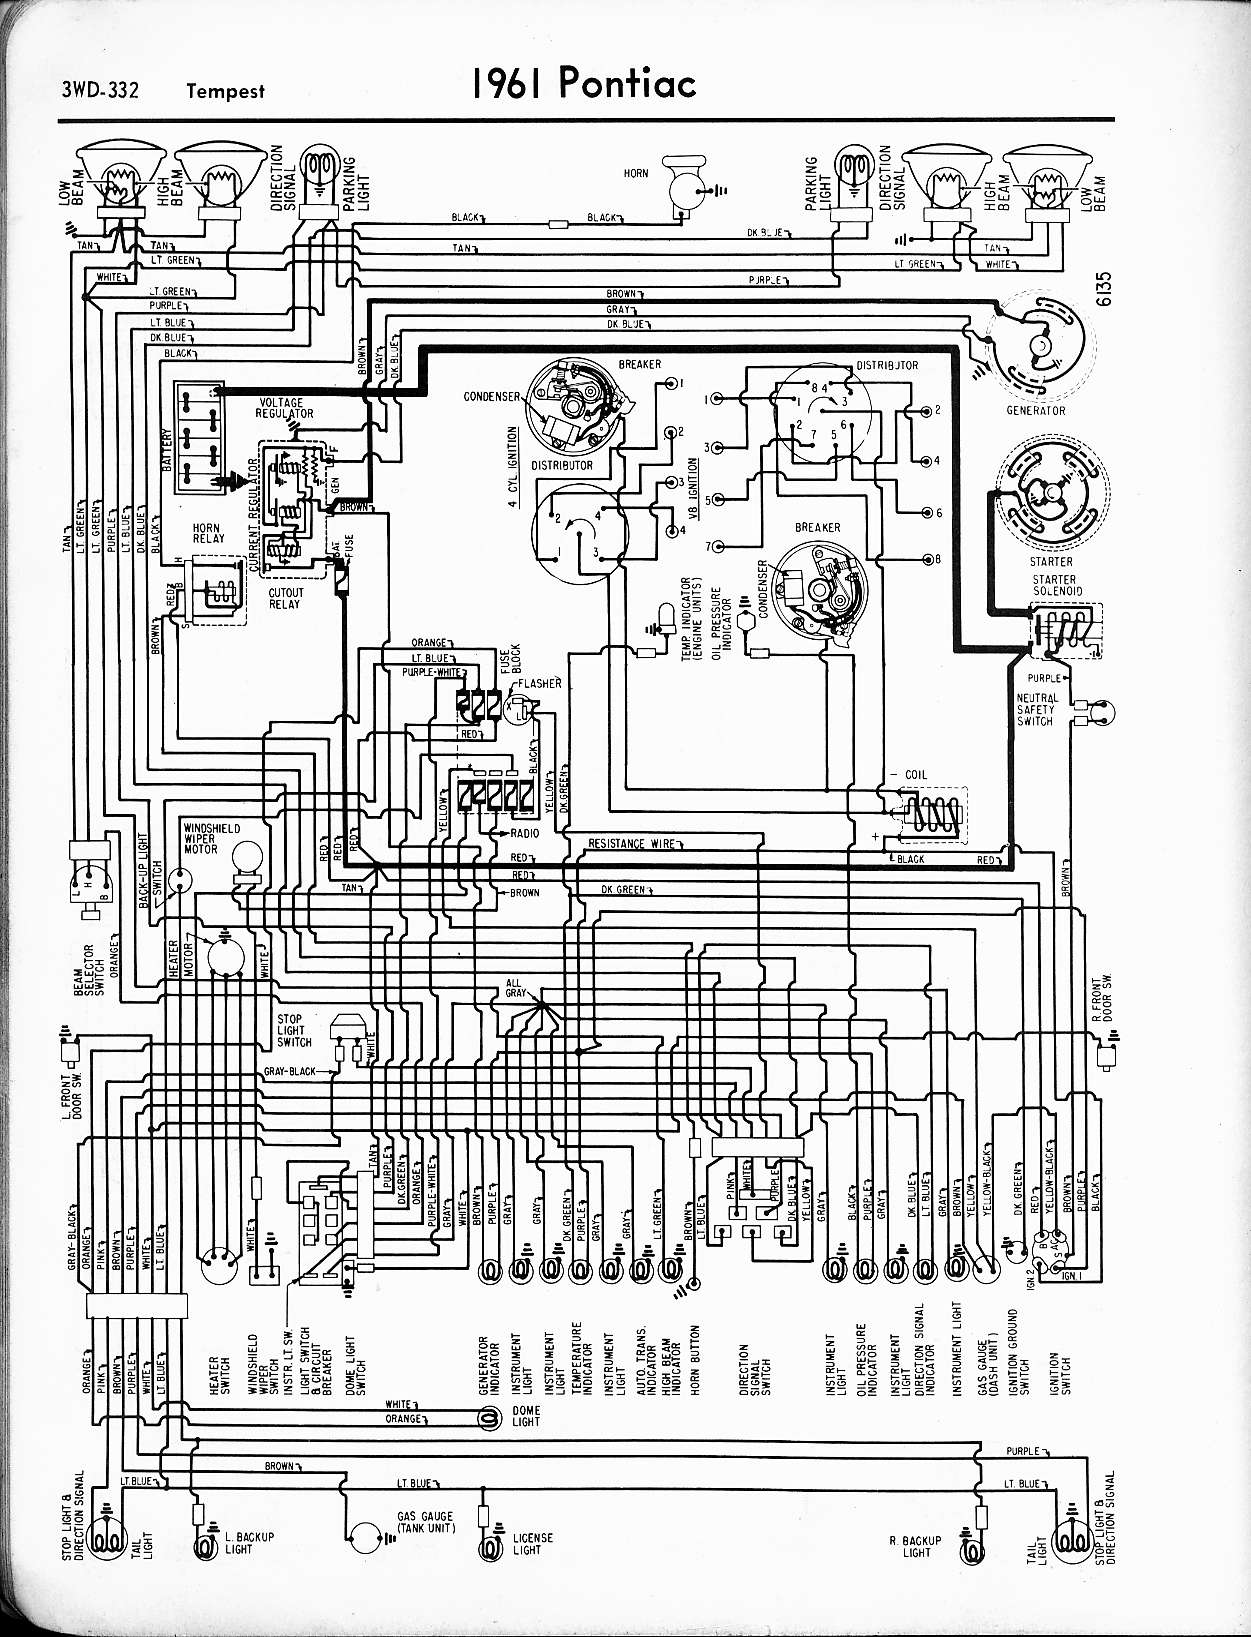 wallace racing wiring diagrams rh wallaceracing com 1999 Pontiac Grand AM Engine  Diagram 2007 Pontiac Grand